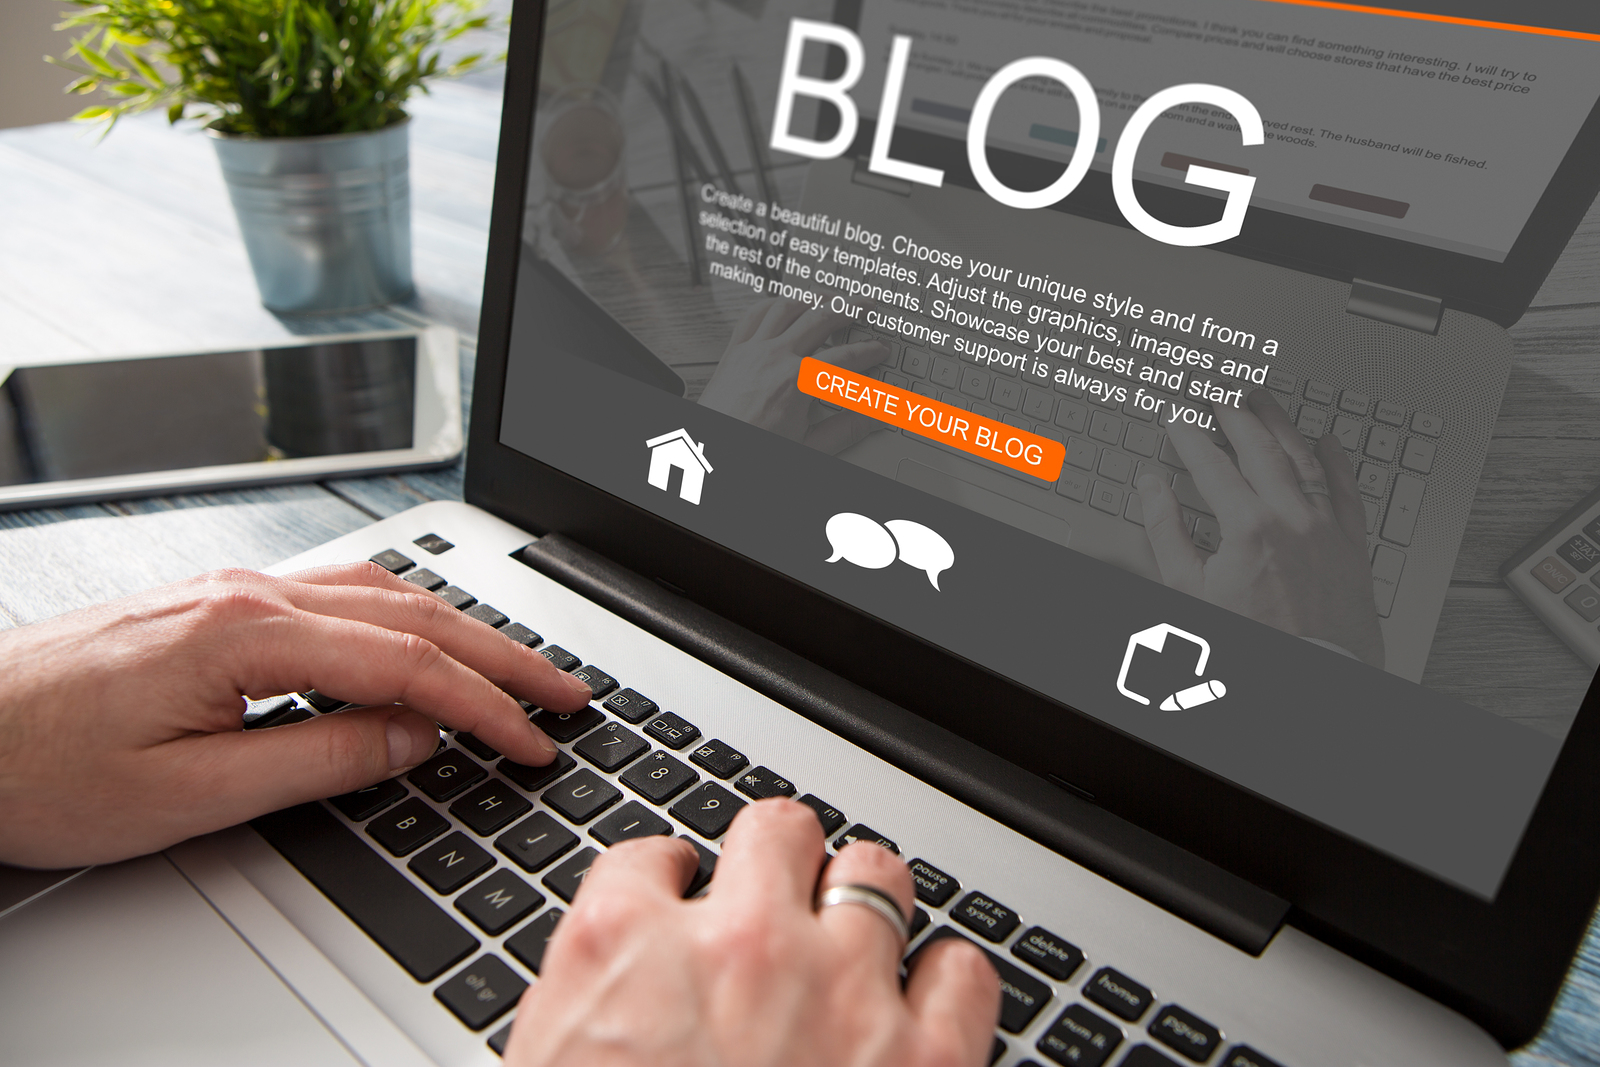 Blogging is the most popular form of content marketing and there's a very good reason for that - it works.